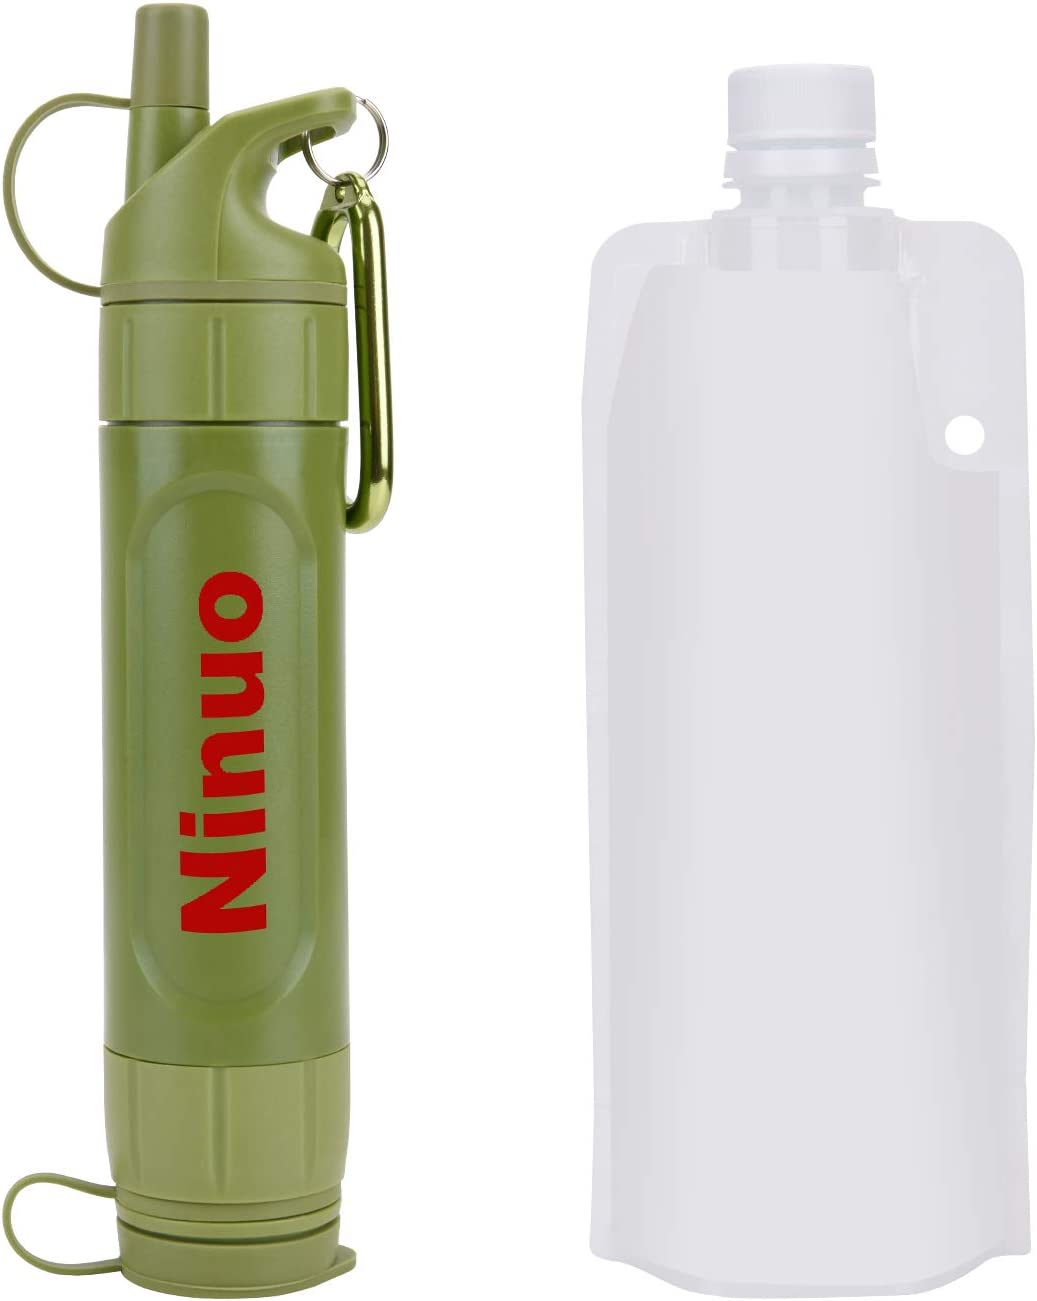 2Pack Lifestraw Personal Portable Water Filter Bottle Purifier Hiking Camping